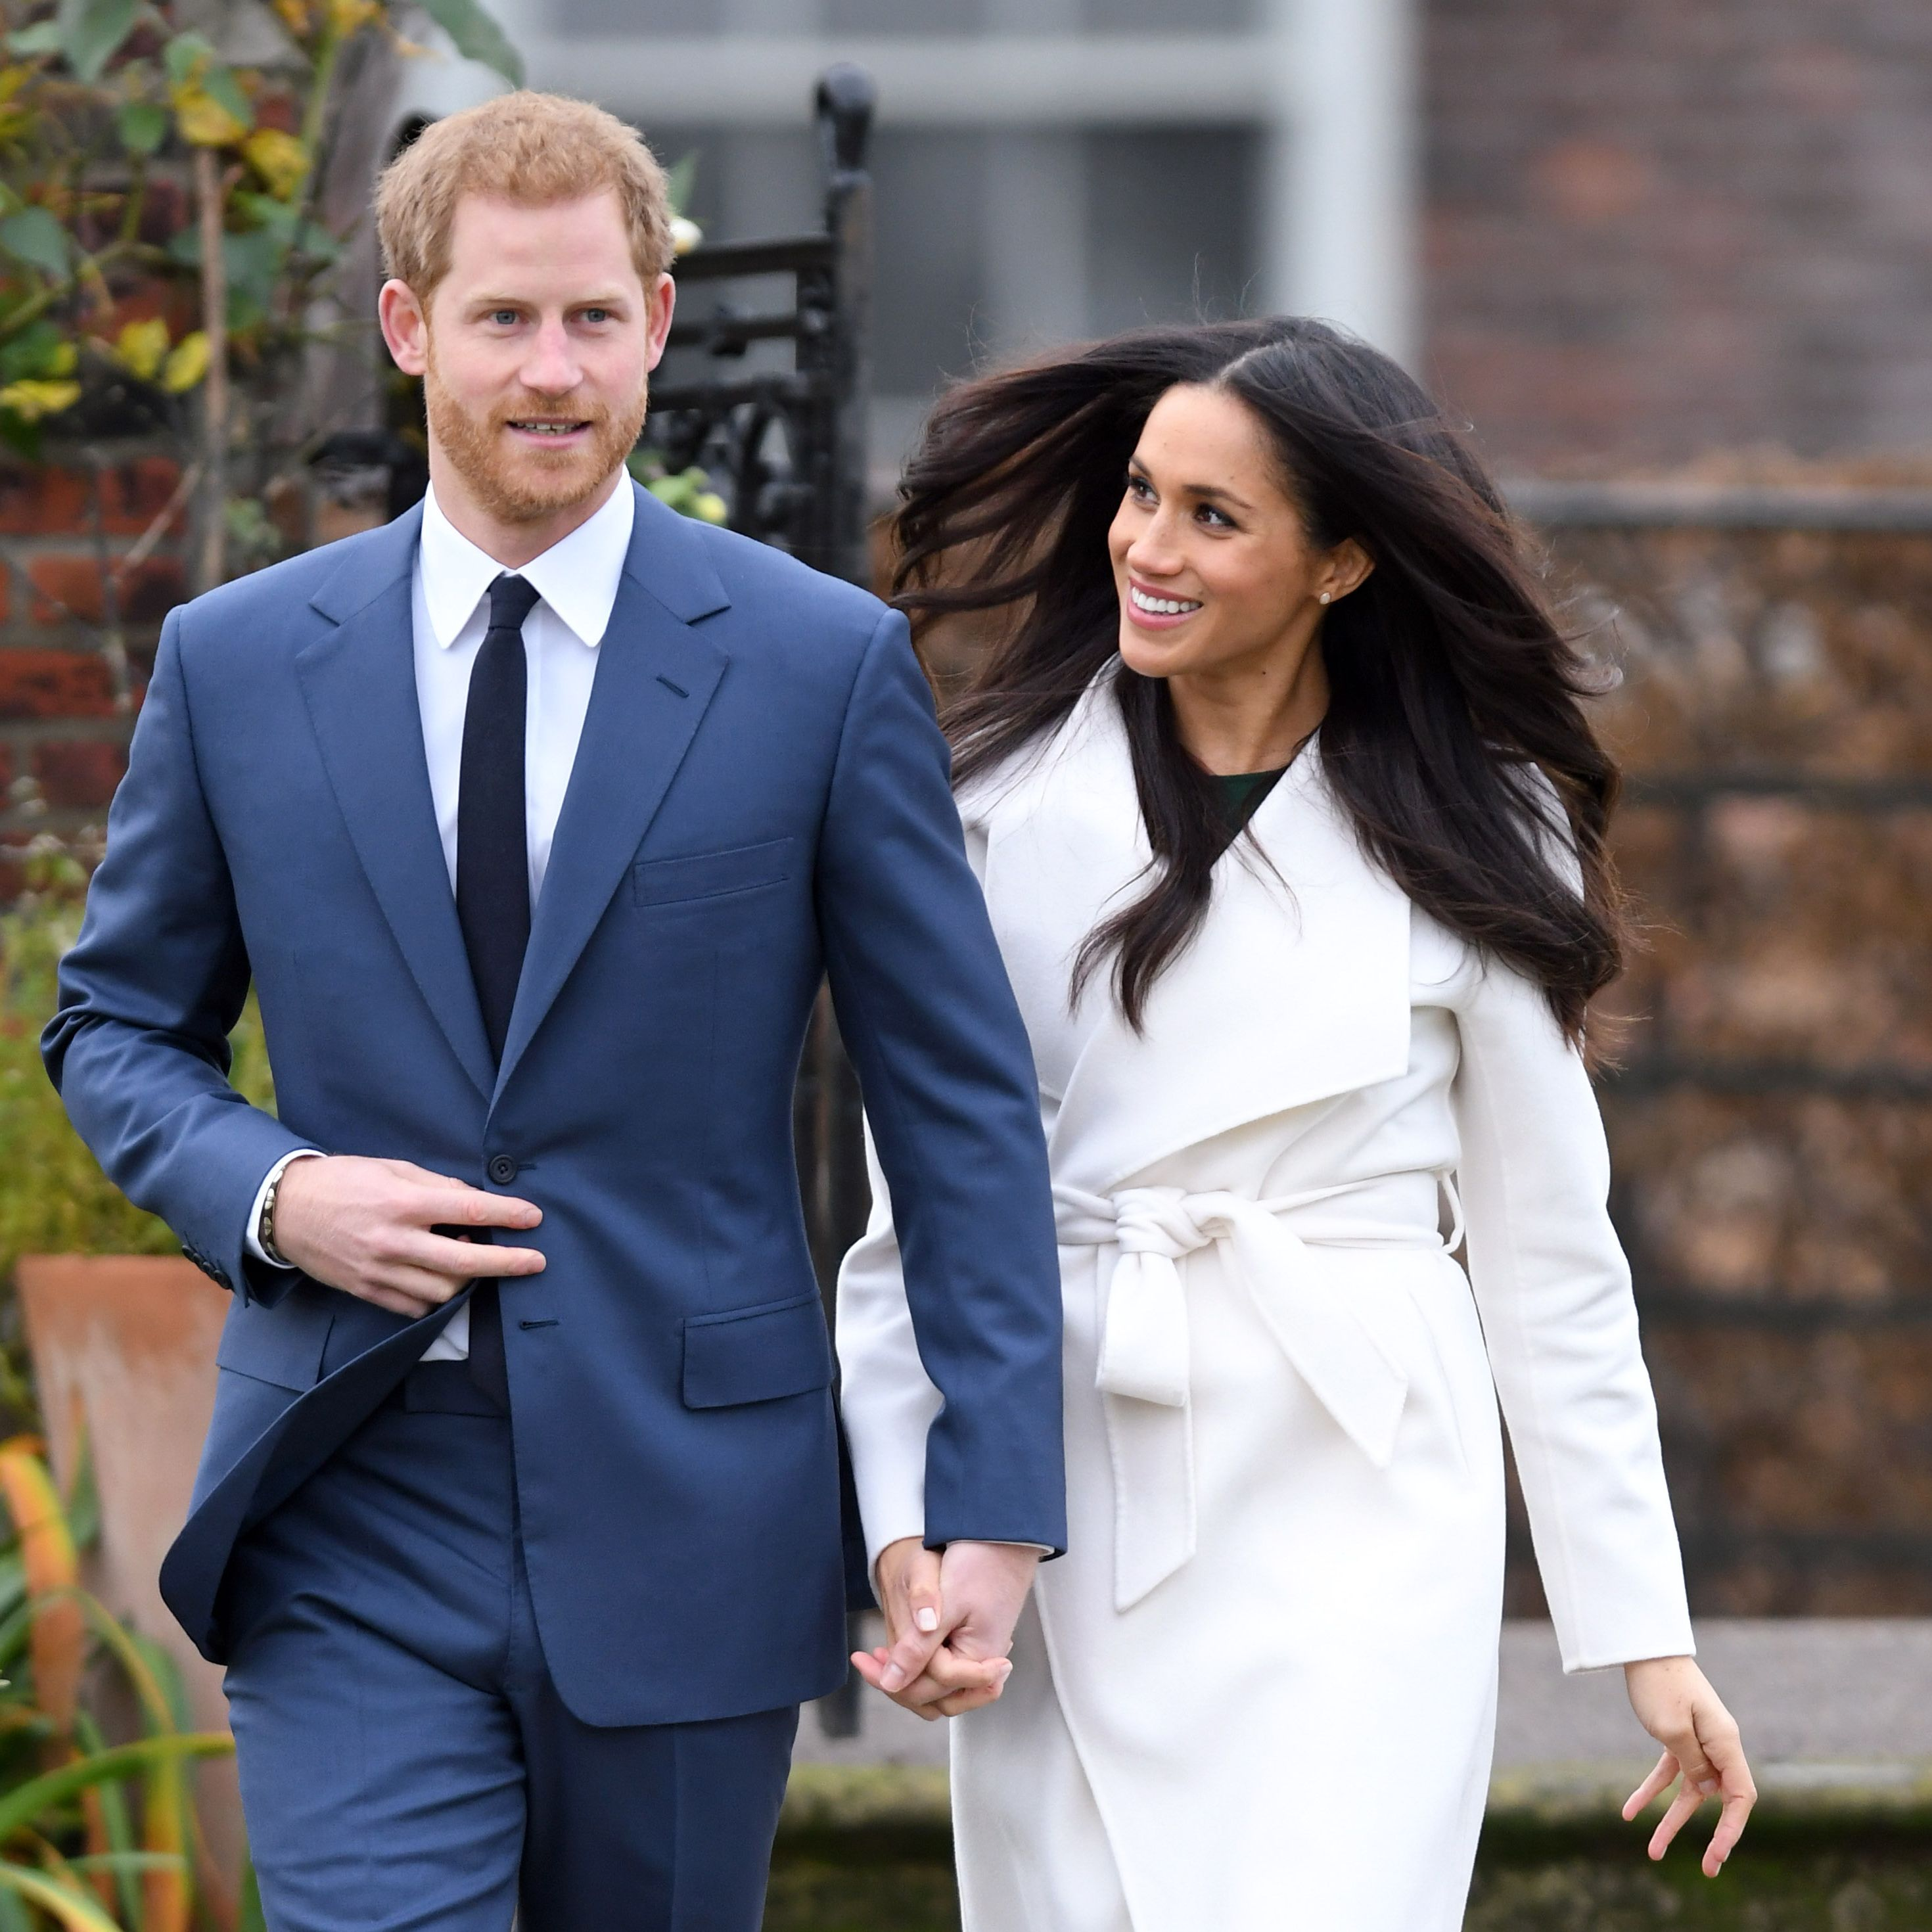 Here's Your Official Guide to Meghan Markle and Prince Harry's Massive Real Estate Portfolio